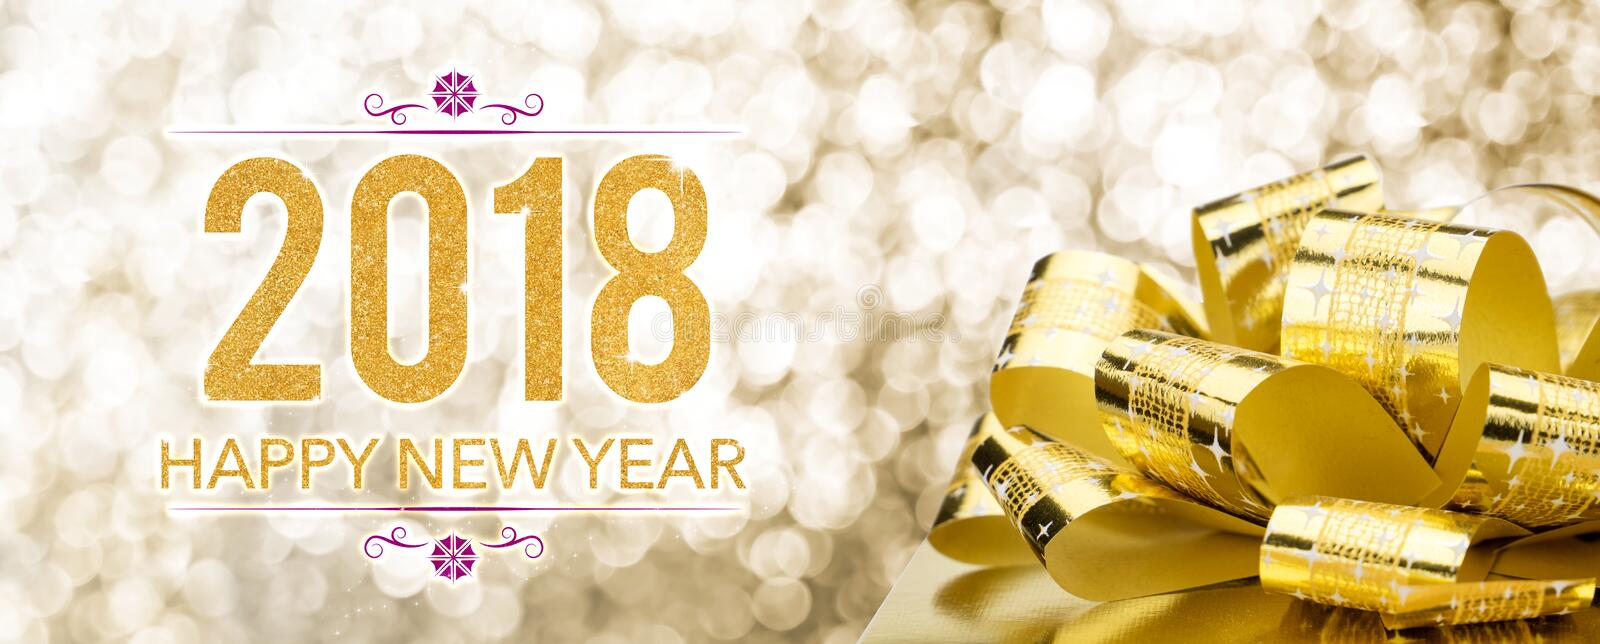 Happy new year 2018 with golden gift box with big bow at sparkling bokeh blur background,Holiday greeting card banner royalty free stock photo